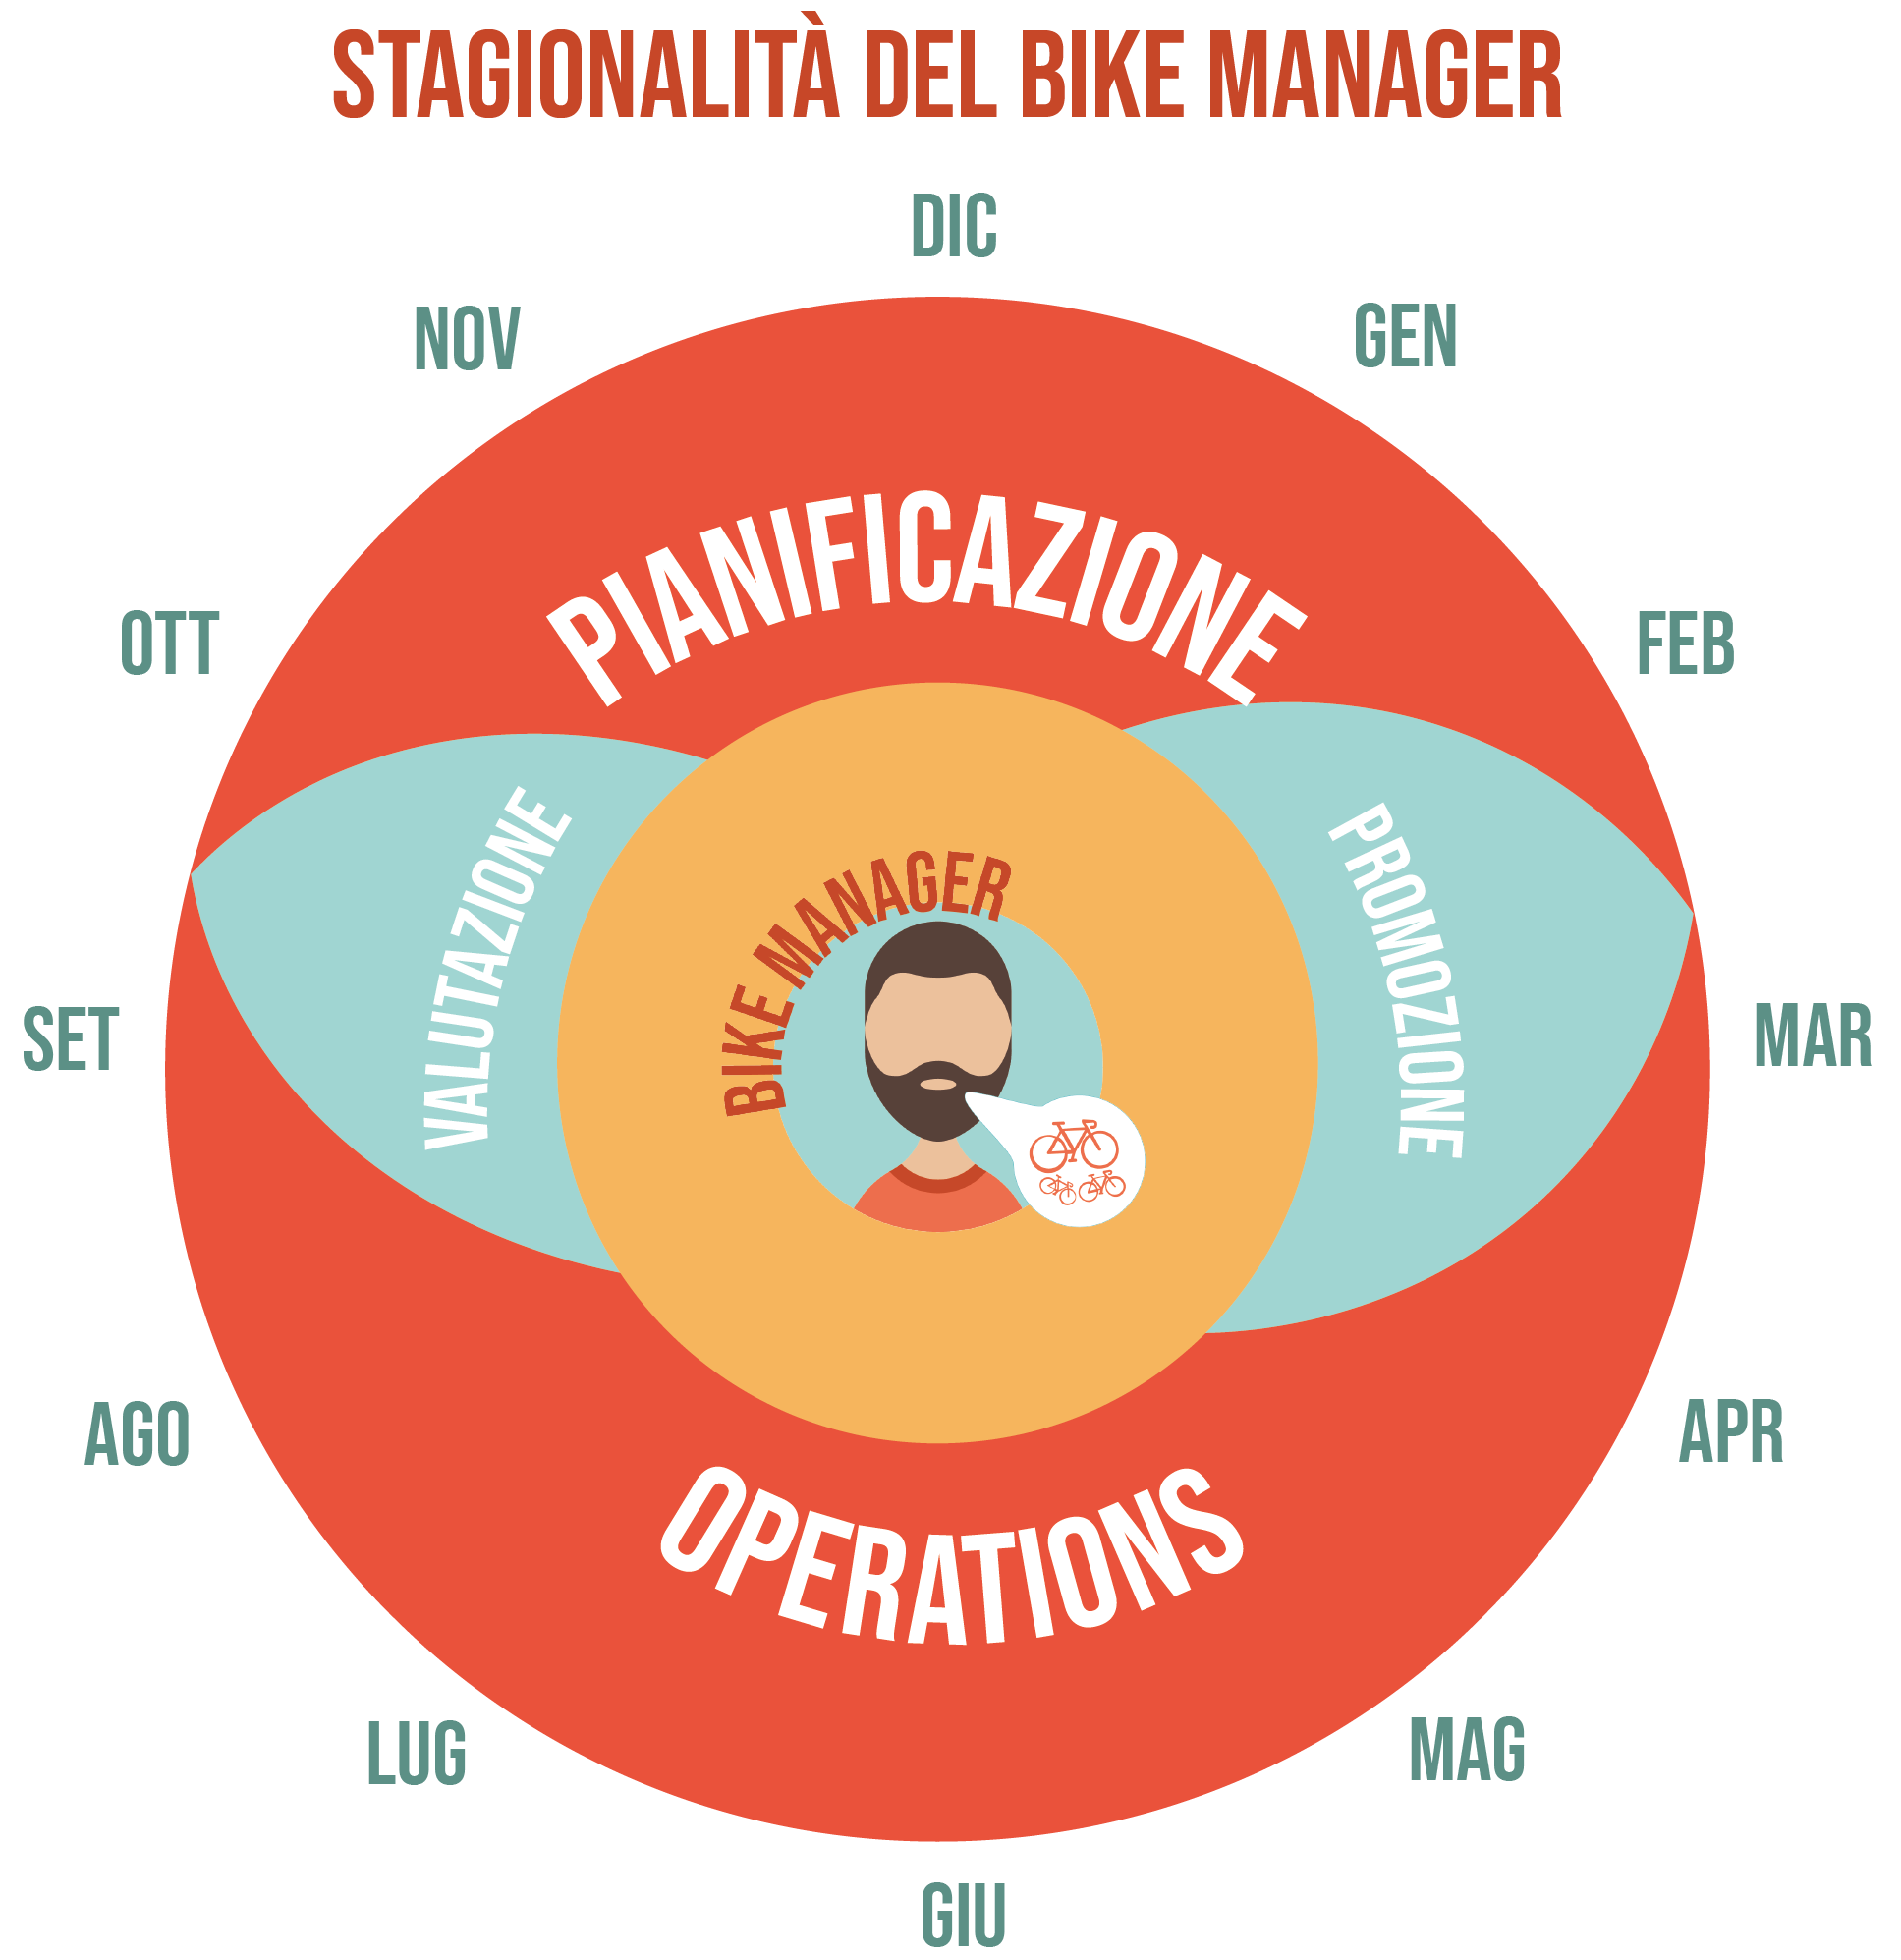 diagramma stagionalità bike manager